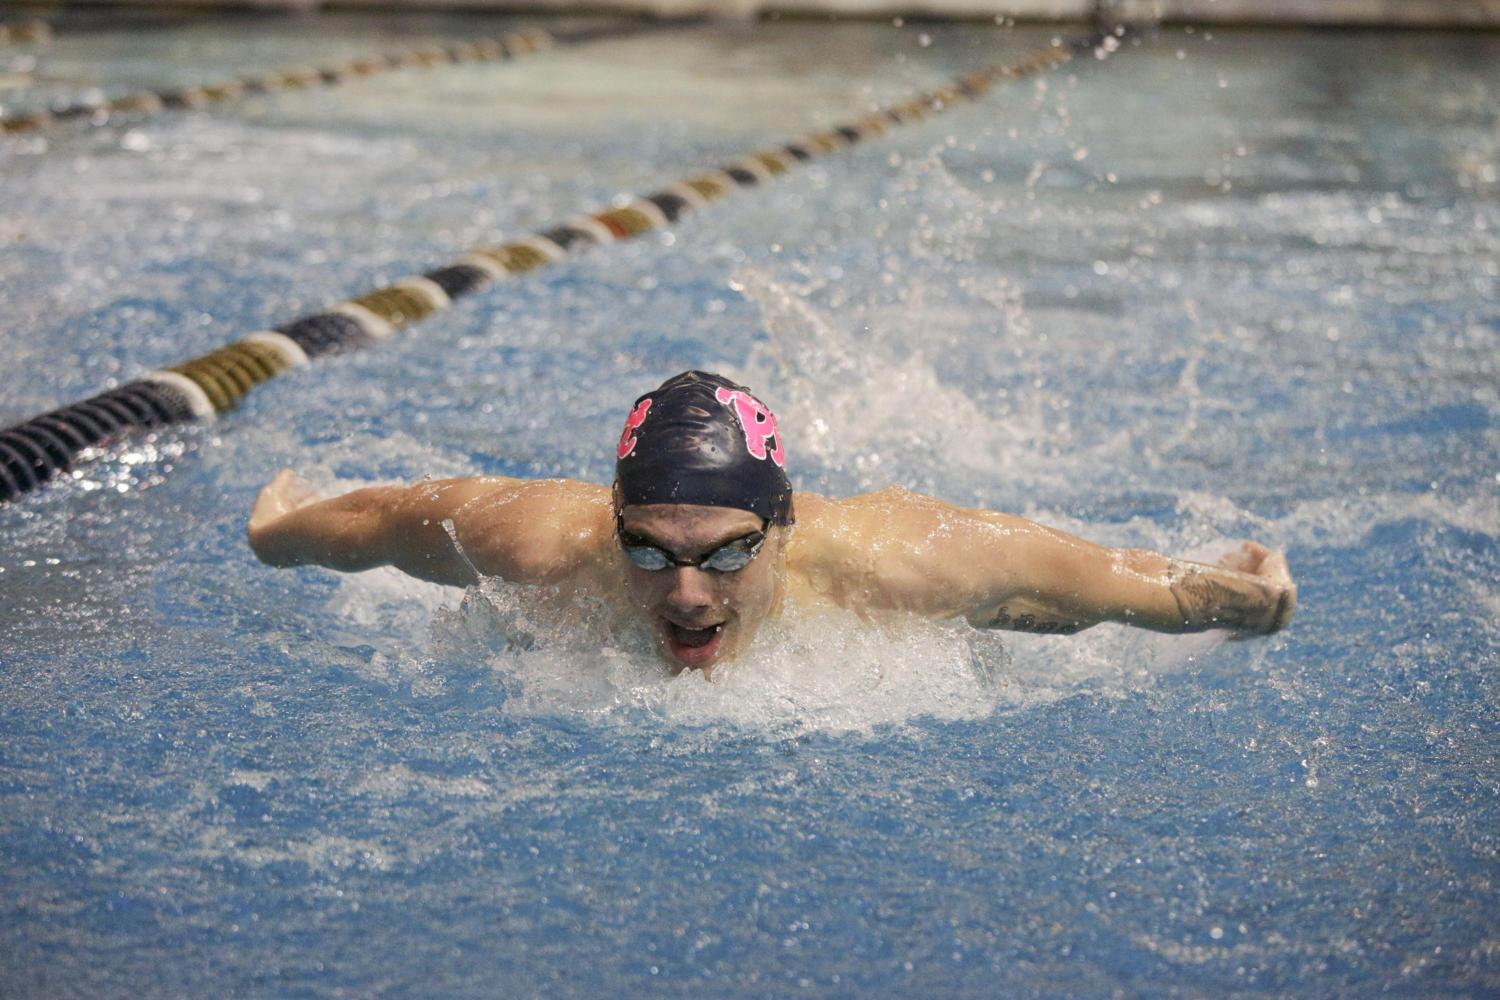 The Panthers swim team recorded a cumulative 621.0 to 288.0 win over their three opponents — Miami, Michigan State and James Madison — at a meet last Friday. (Photo by Thomas Yang | Senior Staff Photographer)